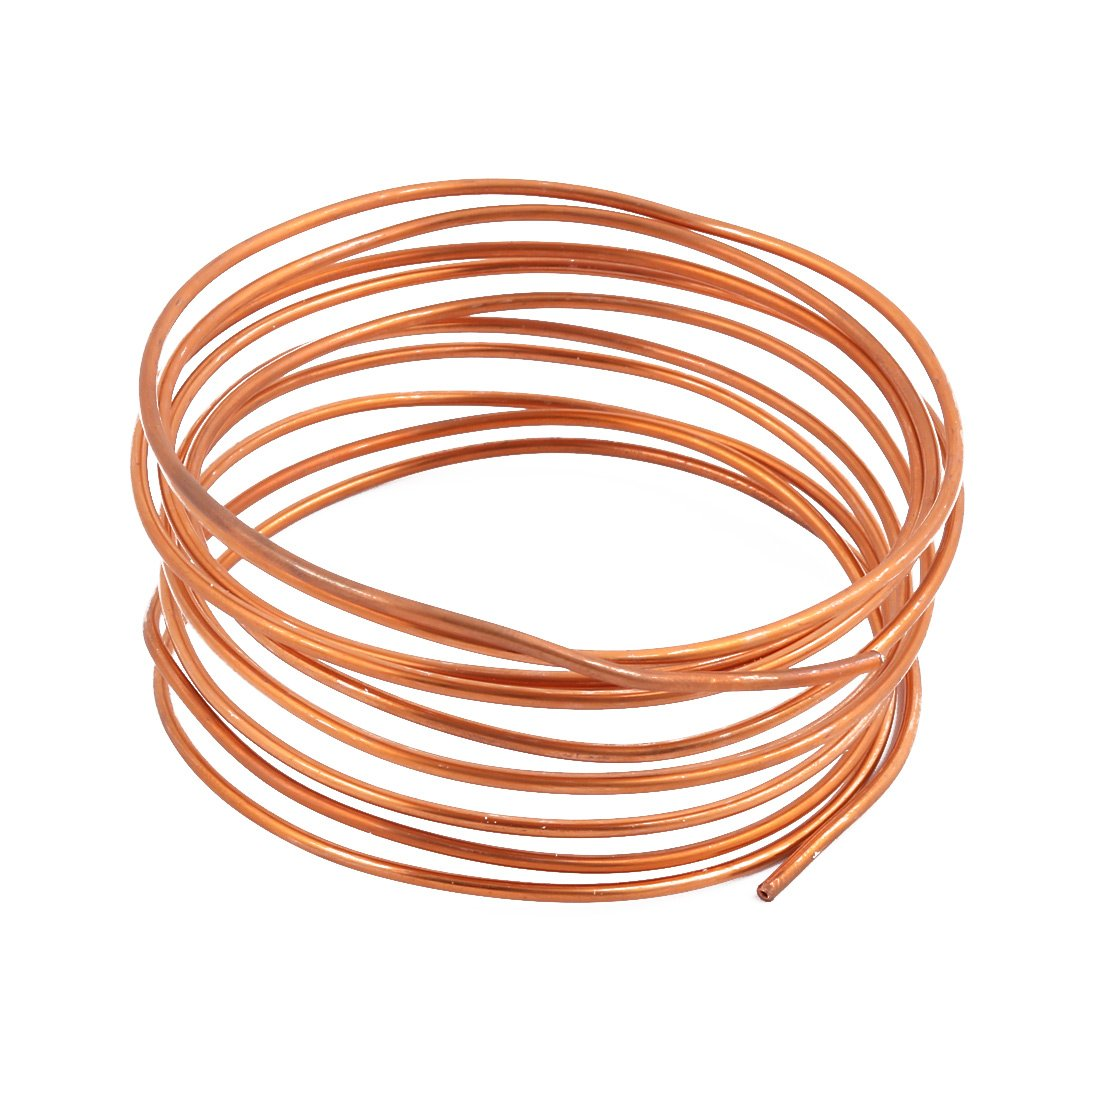 uxcell 2.0mm Dia 2.4M 7.9Ft Length Copper Tone Refrigerator Refrigeration Tubing Coil